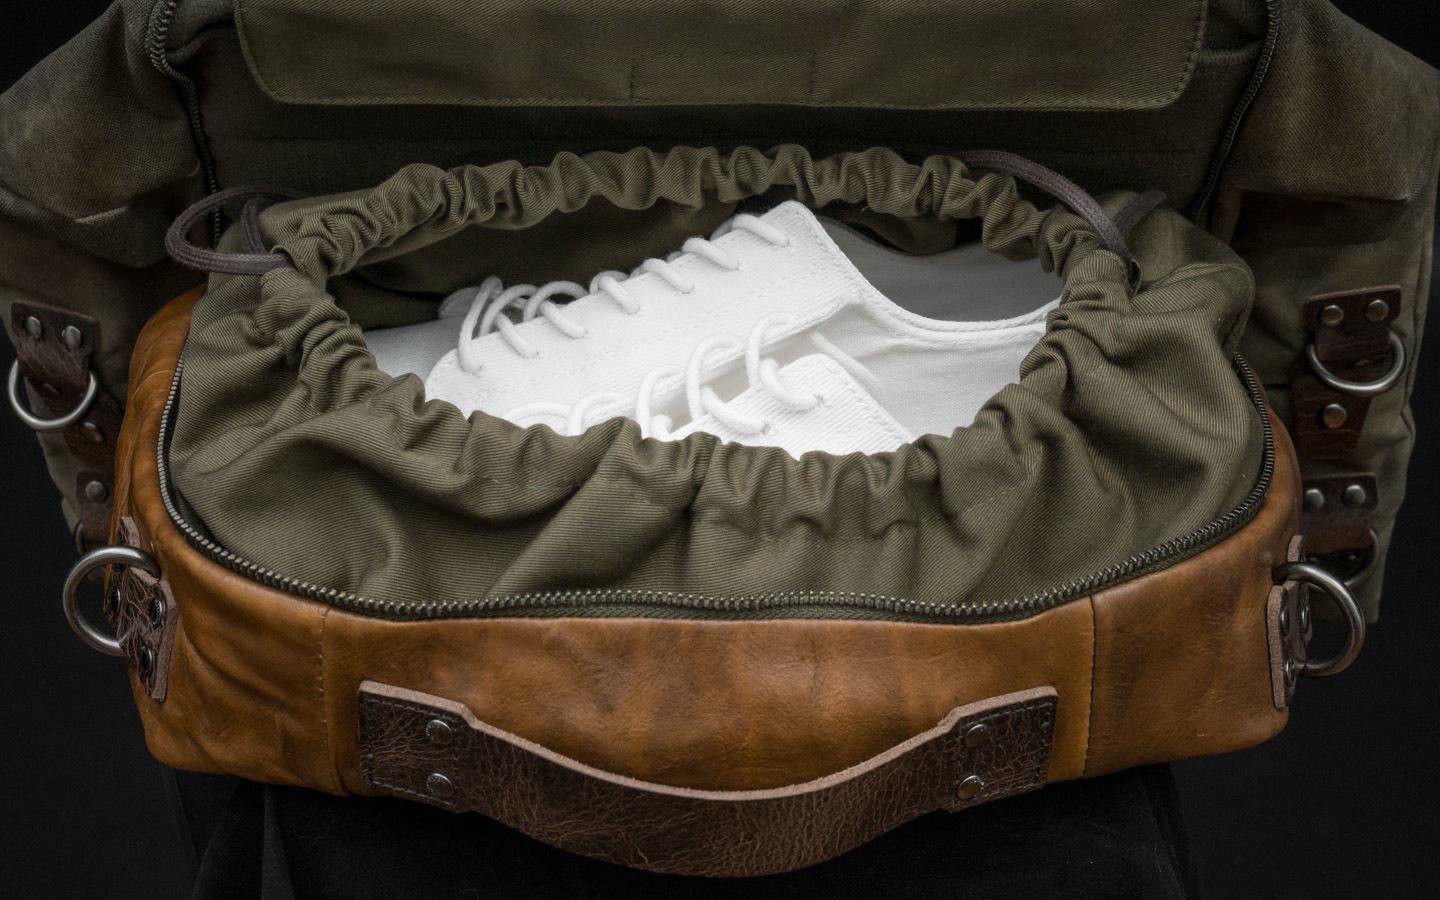 Draw-string compartment for sneakers.